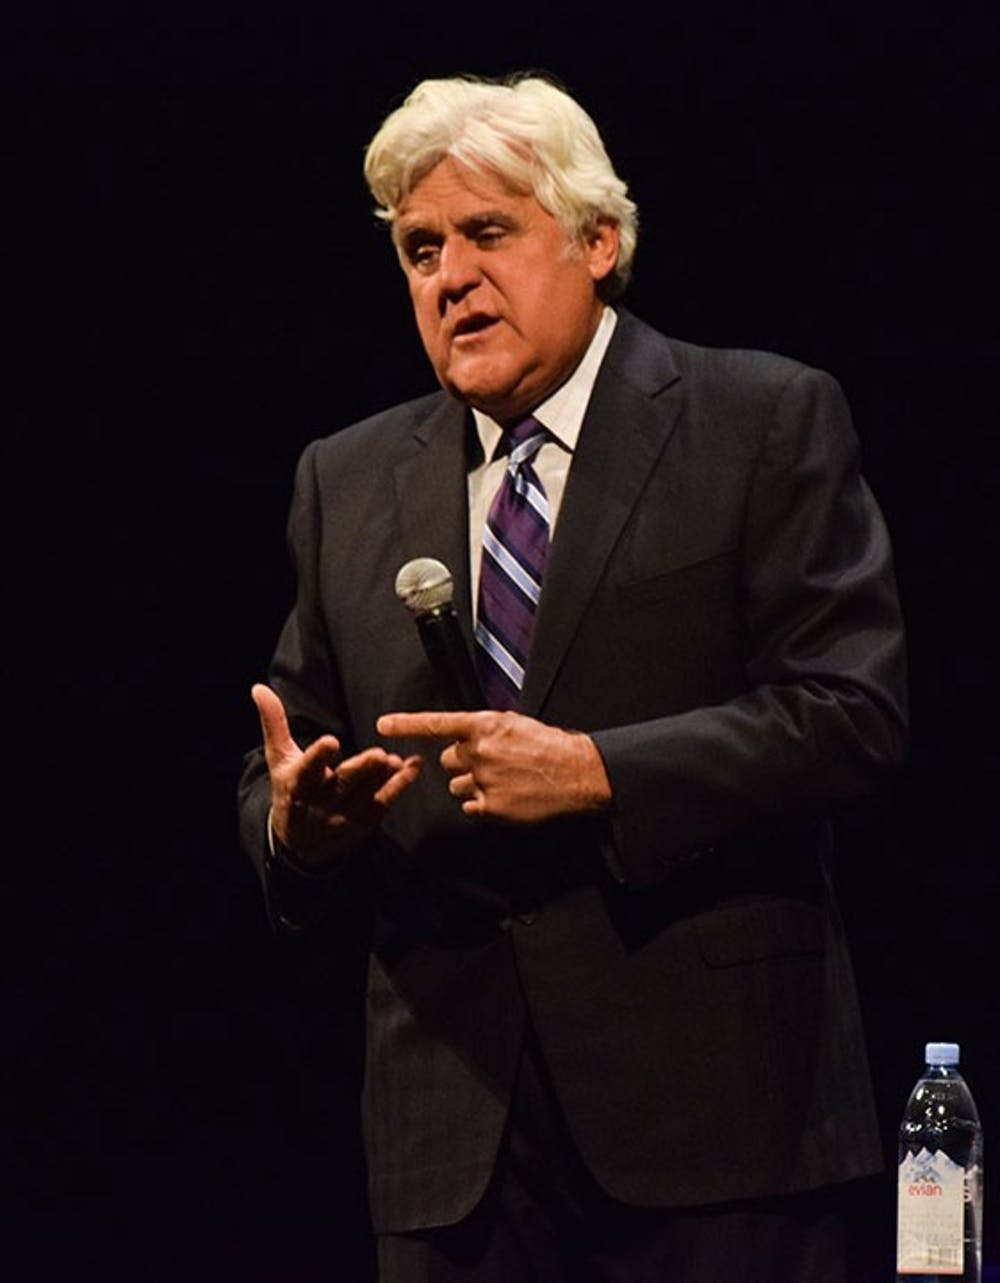 Jay Leno cracks jokes about society issues at Luhrs performance